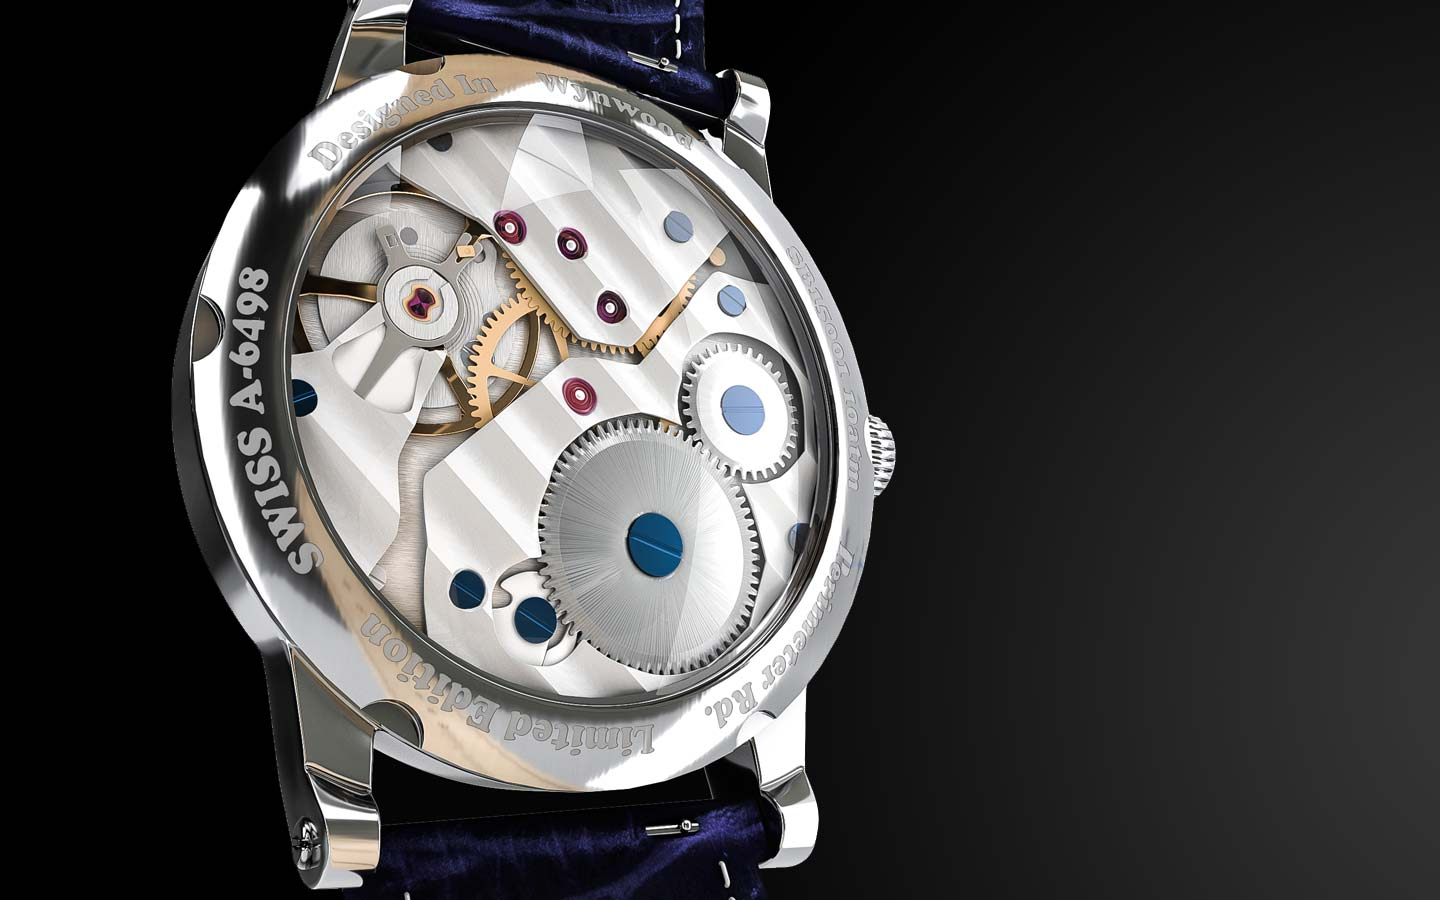 watch 3d rendering done in 3ds max and corona